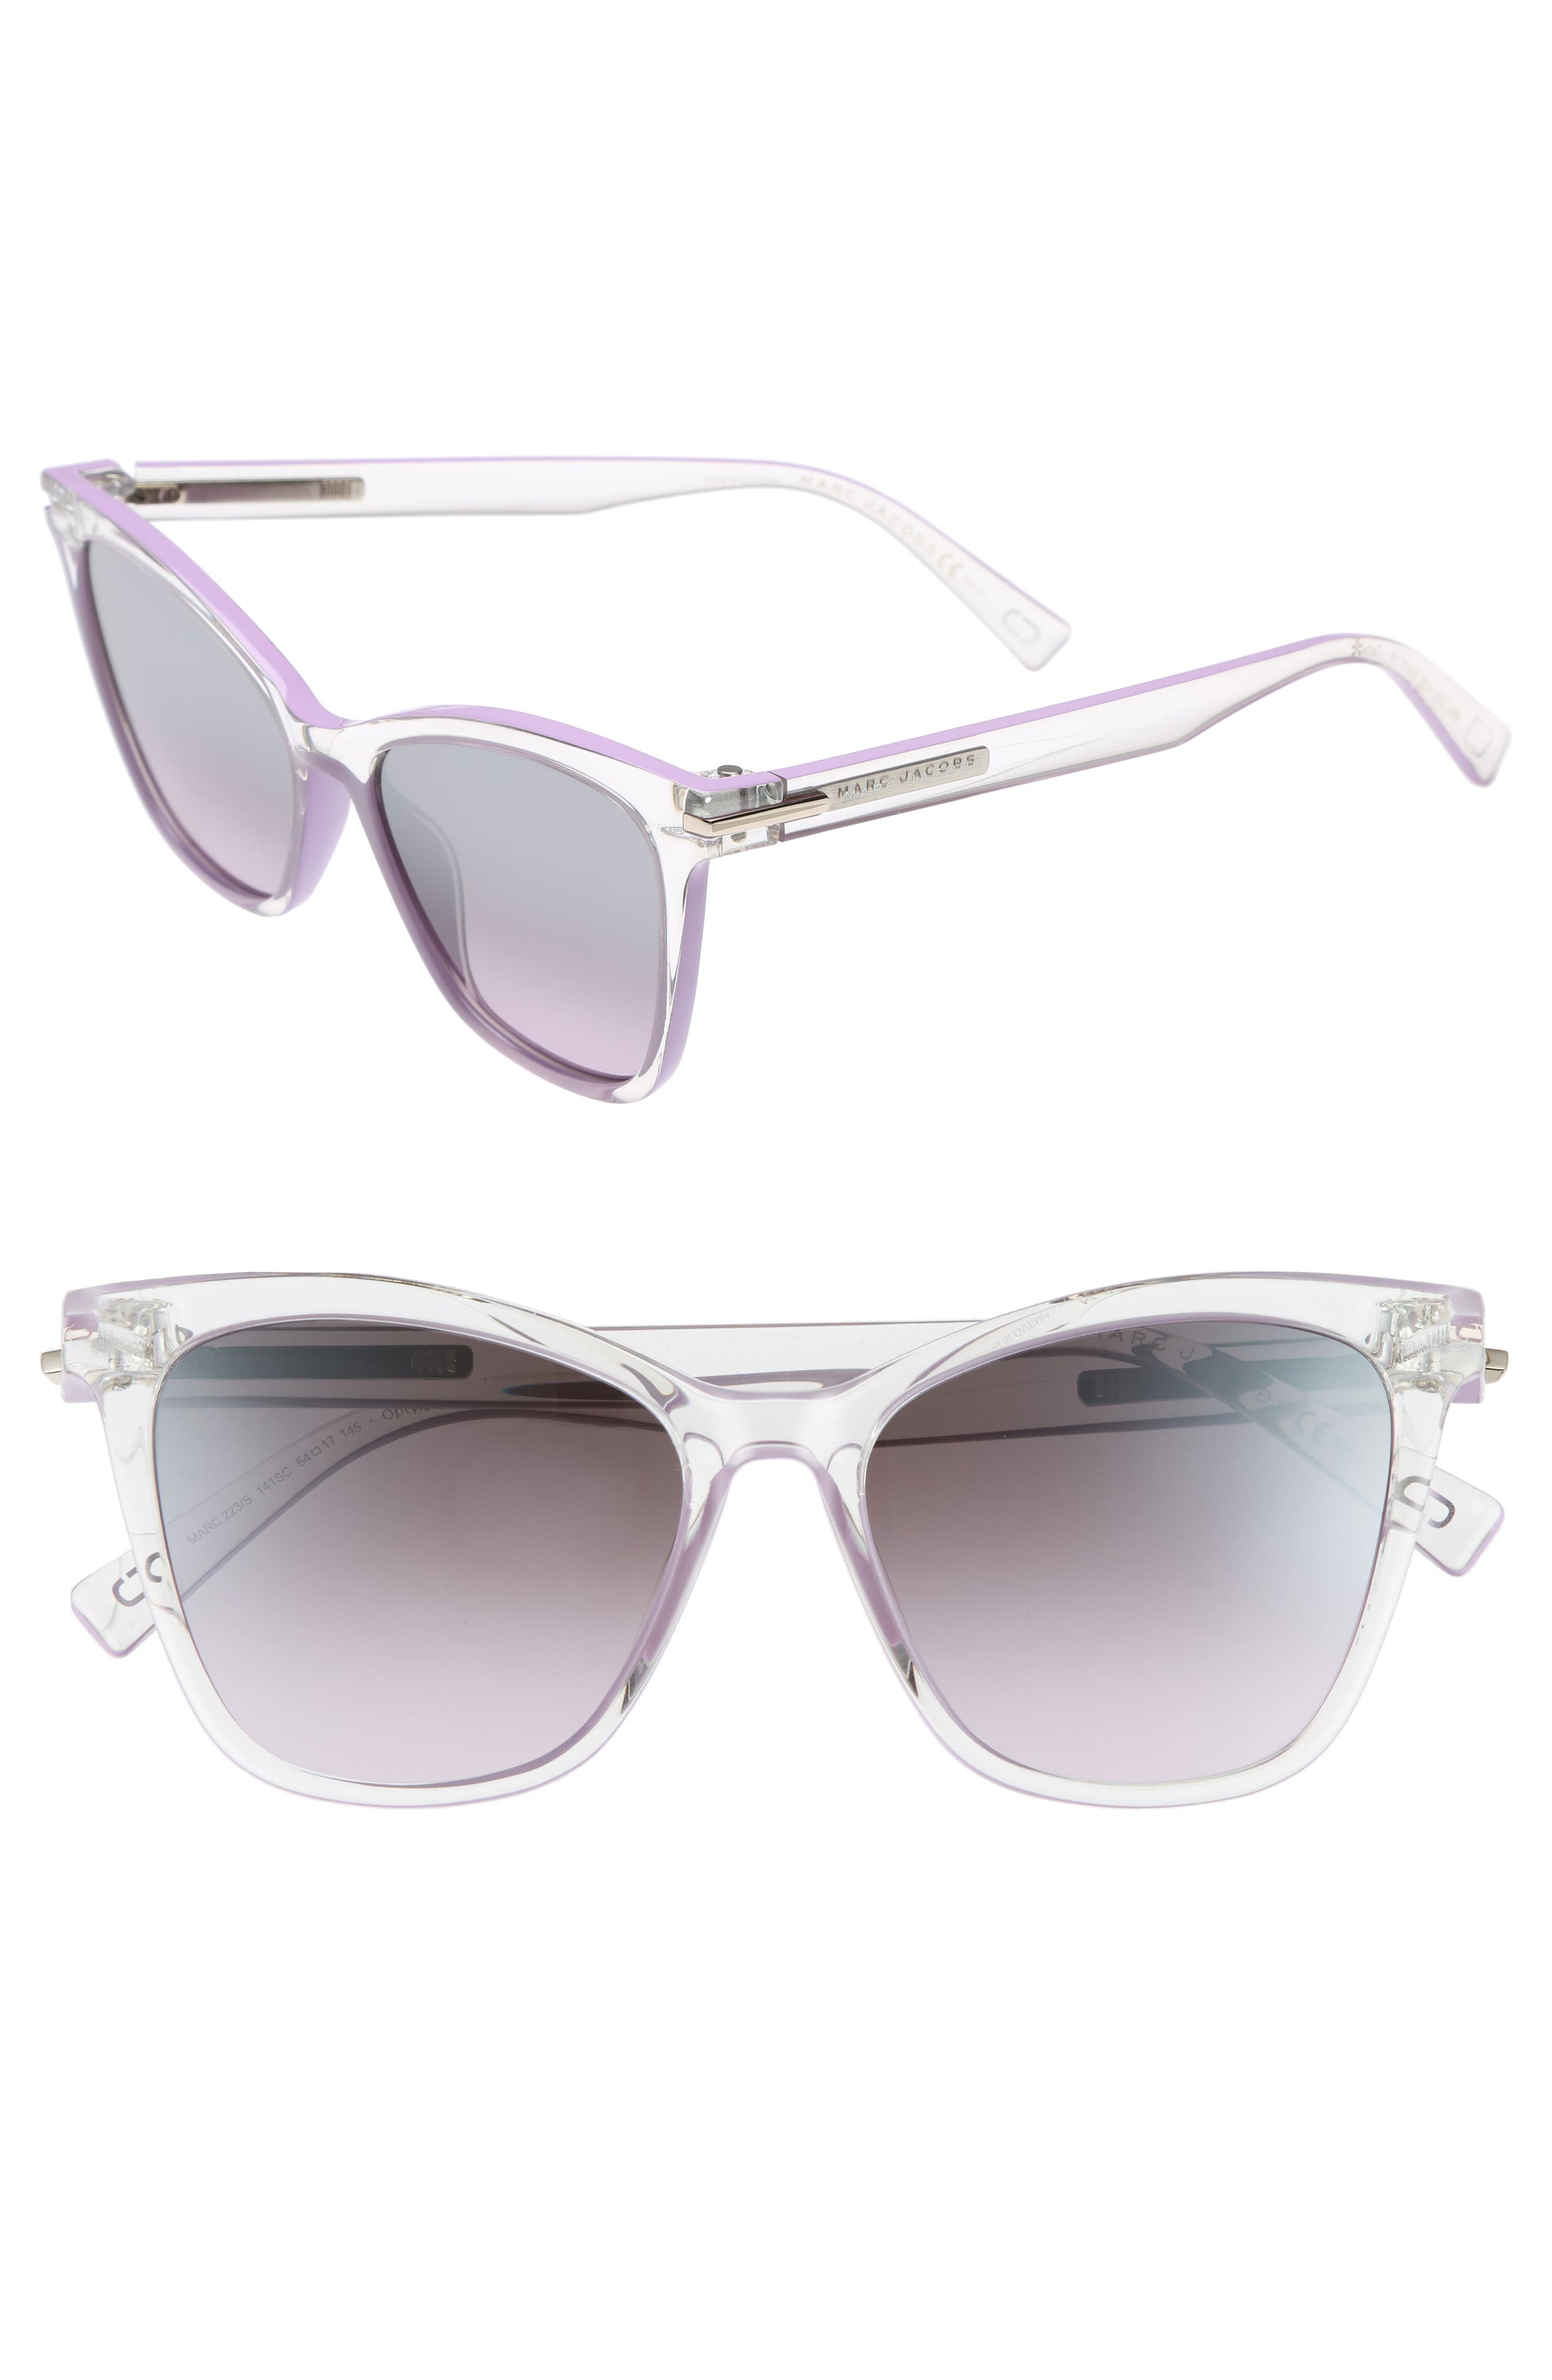 54mm Gradient Lens Sunglasses,                             Main thumbnail 1, color,                             Crystal Clear Violet